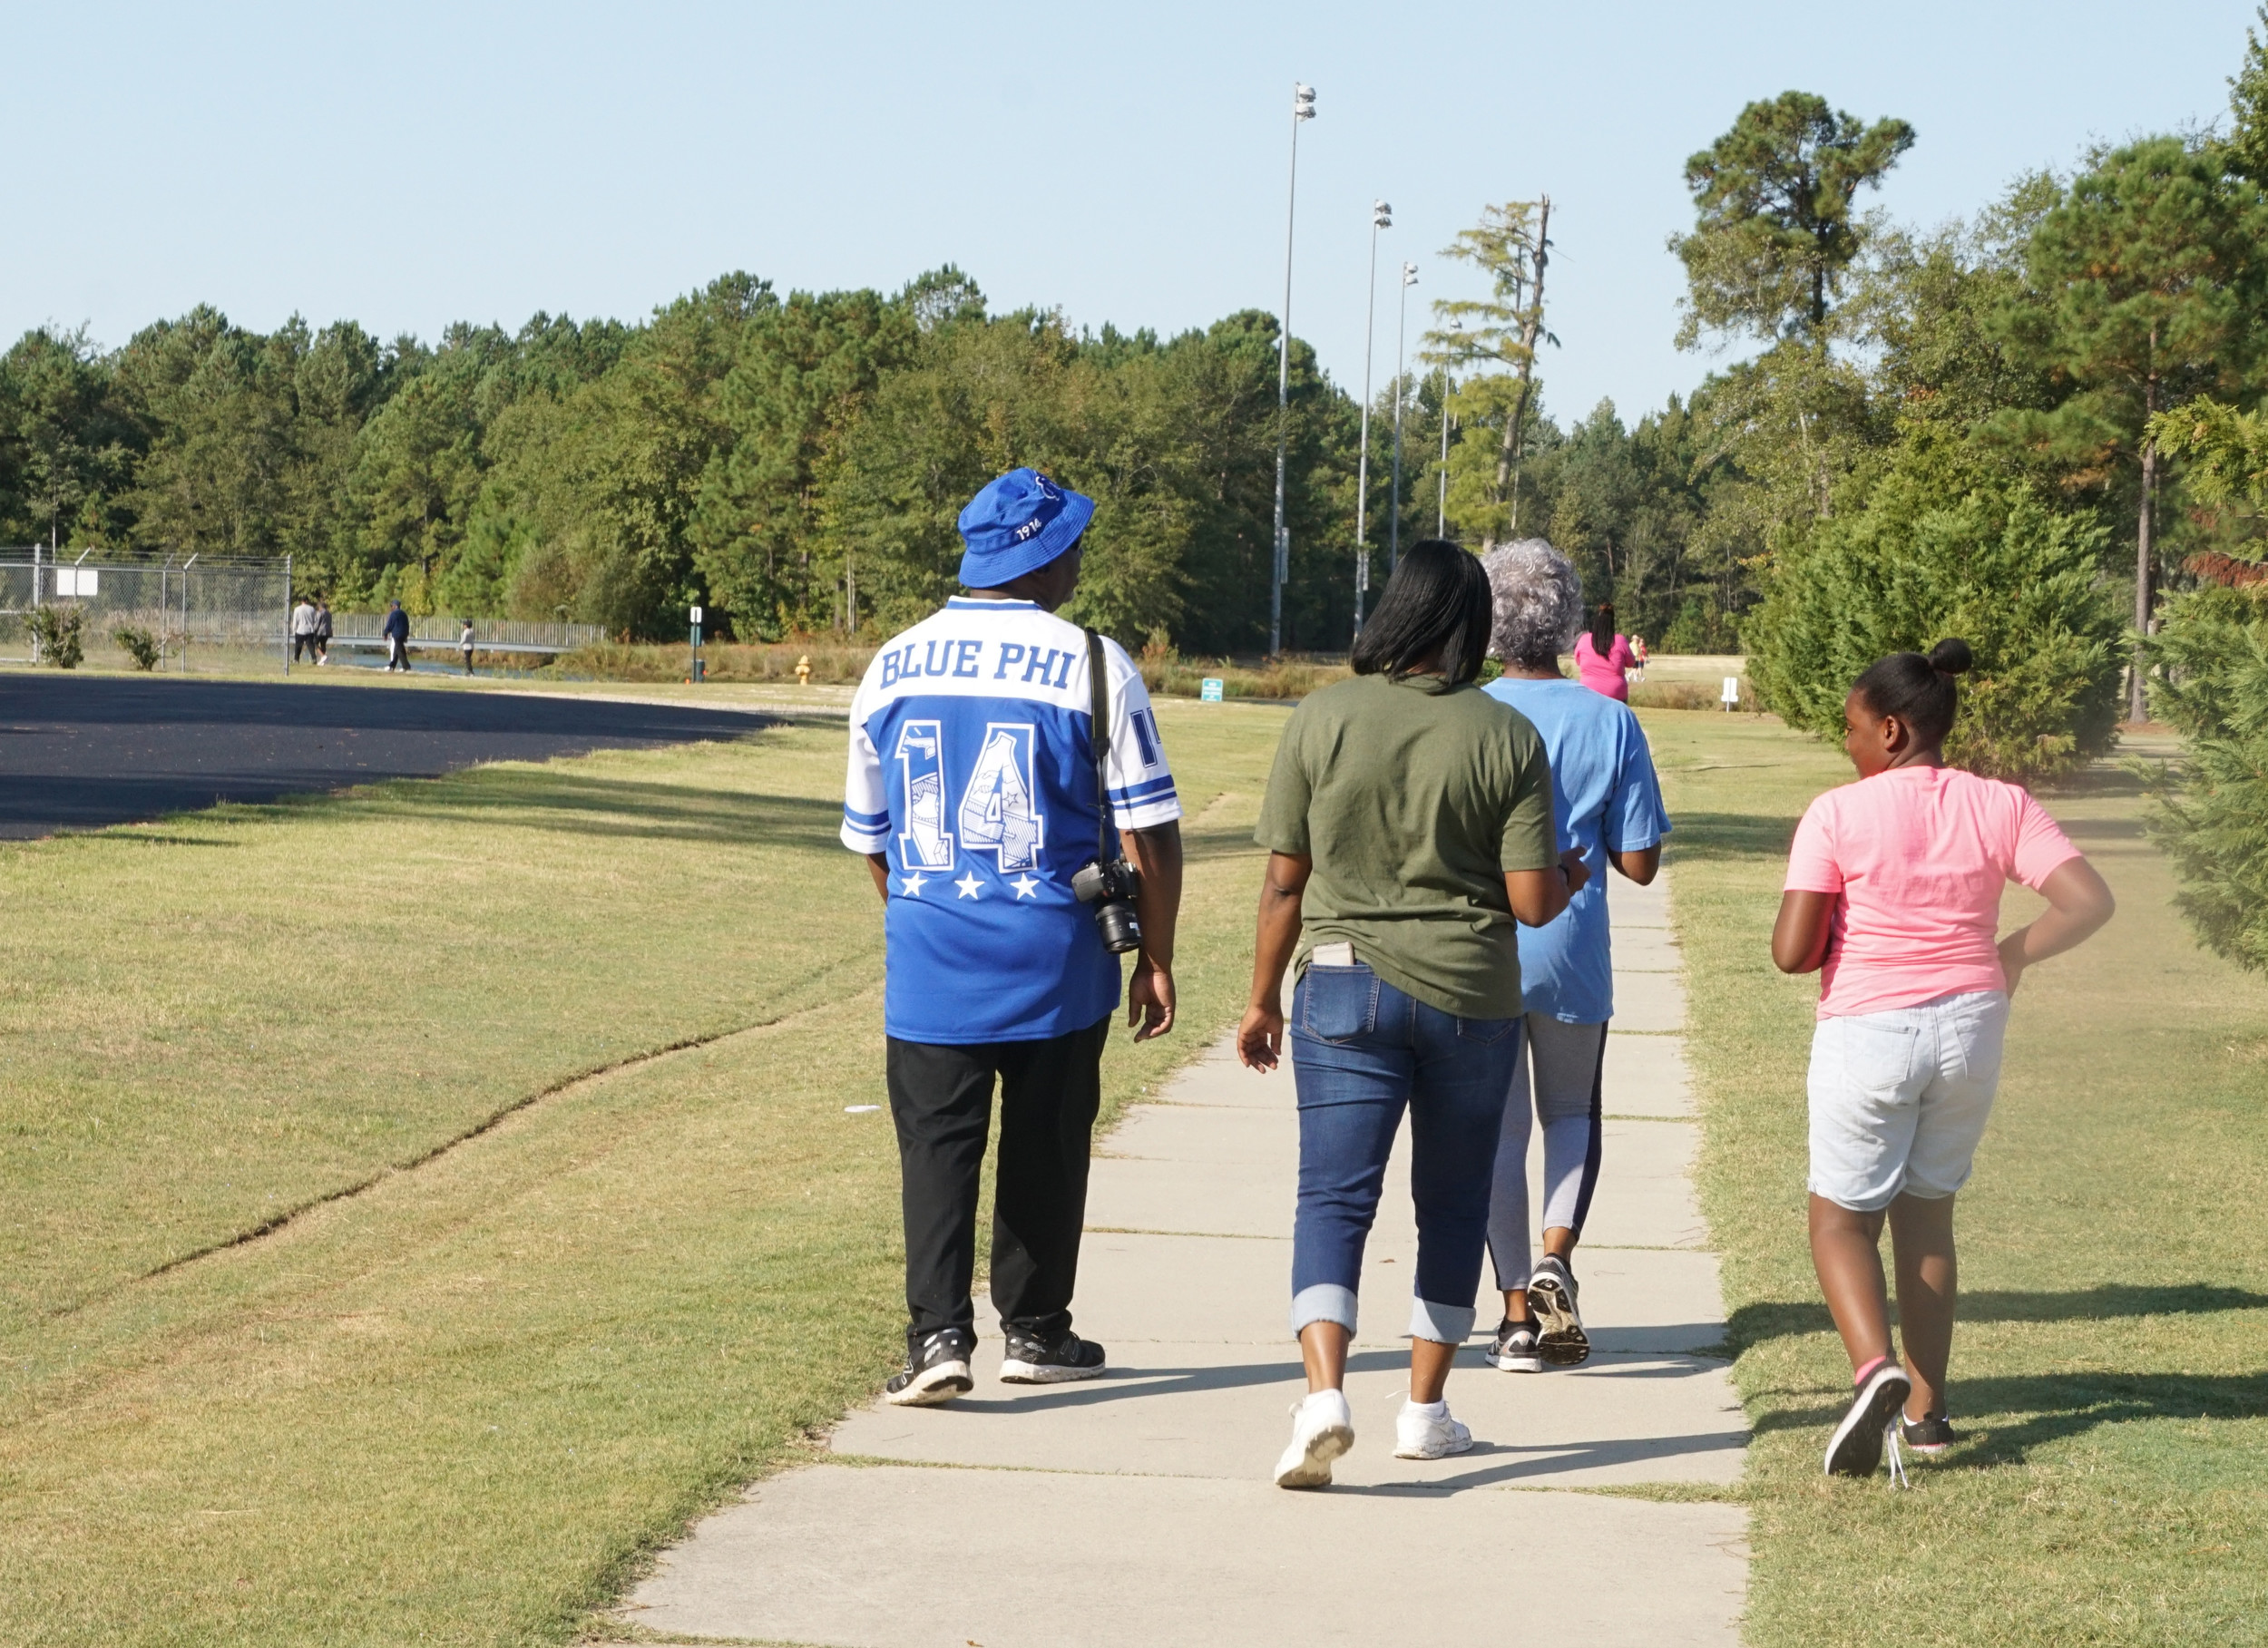 JIM HILLEY /  THE SUMTER ITEMMonica Jackson, right, walks with her grandparents at the Grandparents Day Walk sponsored by Sumter County Active Lifestyles at Patriot Park on Saturday.